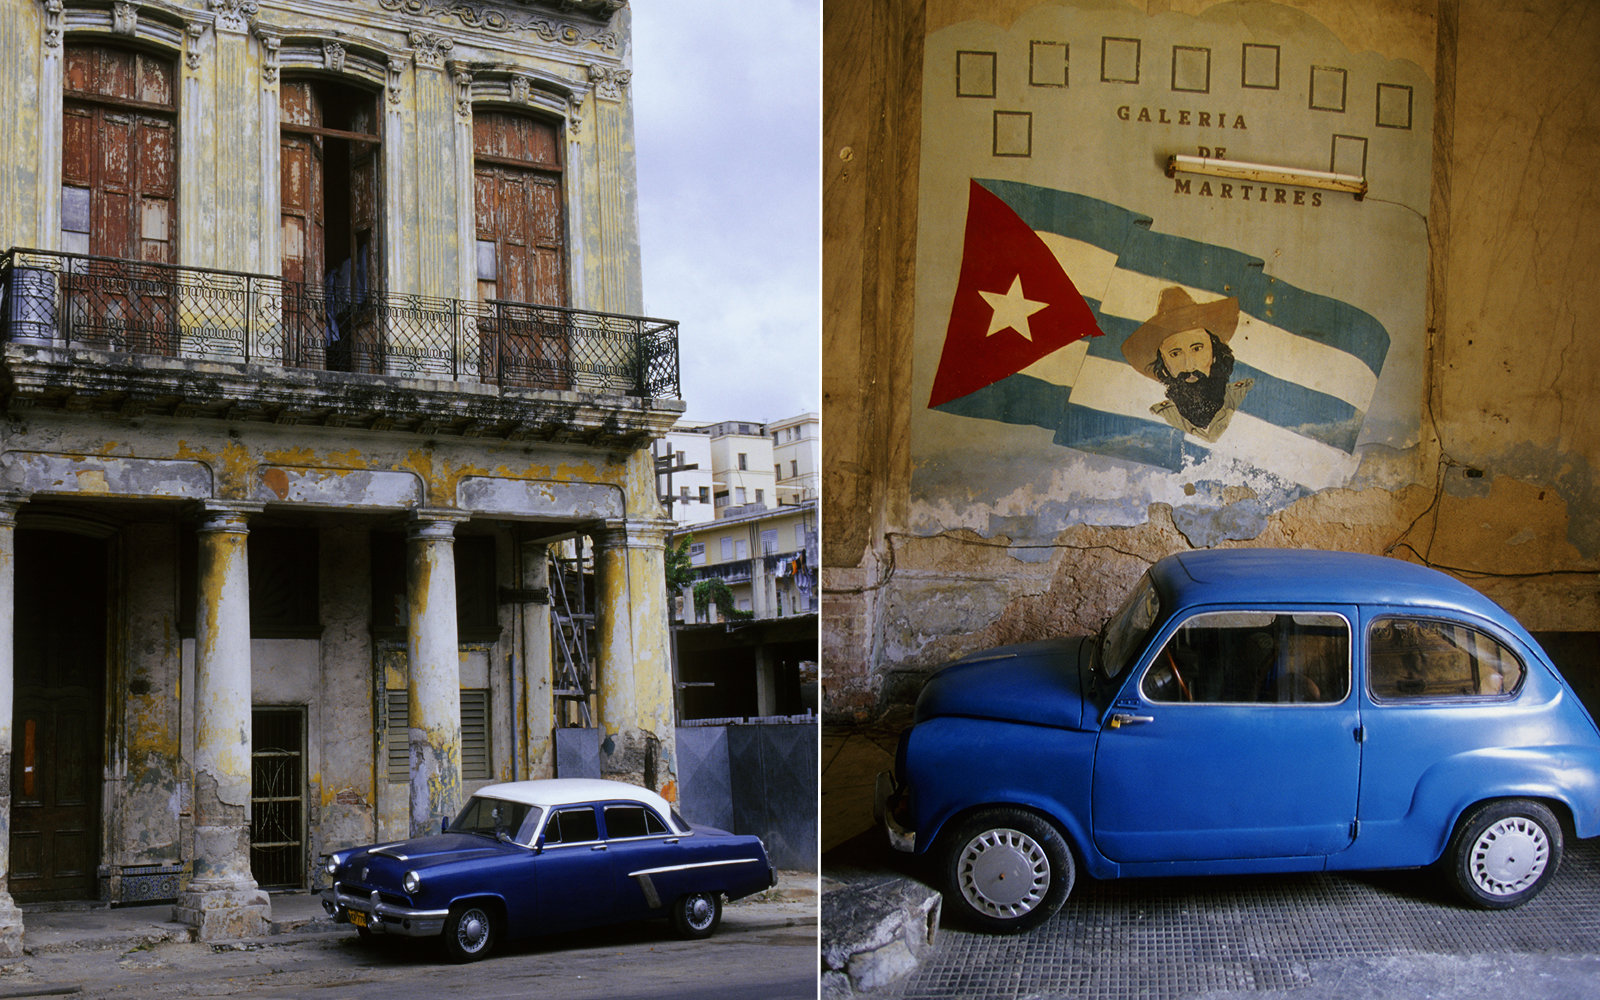 CUBA - 2003/01/01: Cuba, Havana, Paladar Restaurant Building, Movie Set For 'strawberries And Chocolate', Car, Sign. (Photo by Wolfgang Kaehler/LightRocket via Getty Images)